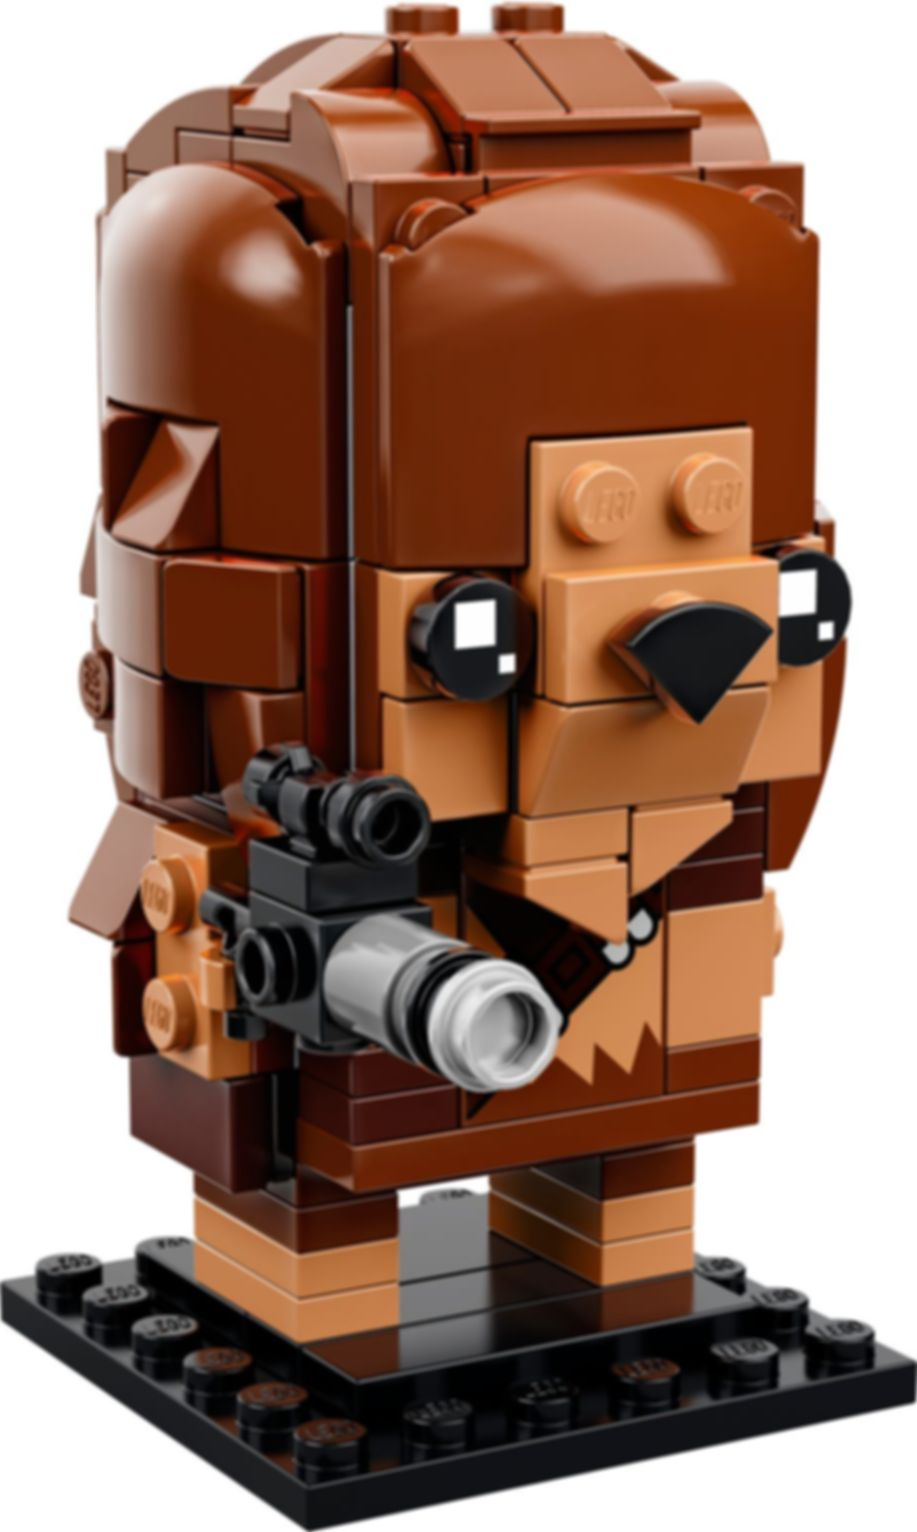 Chewbacca™ components